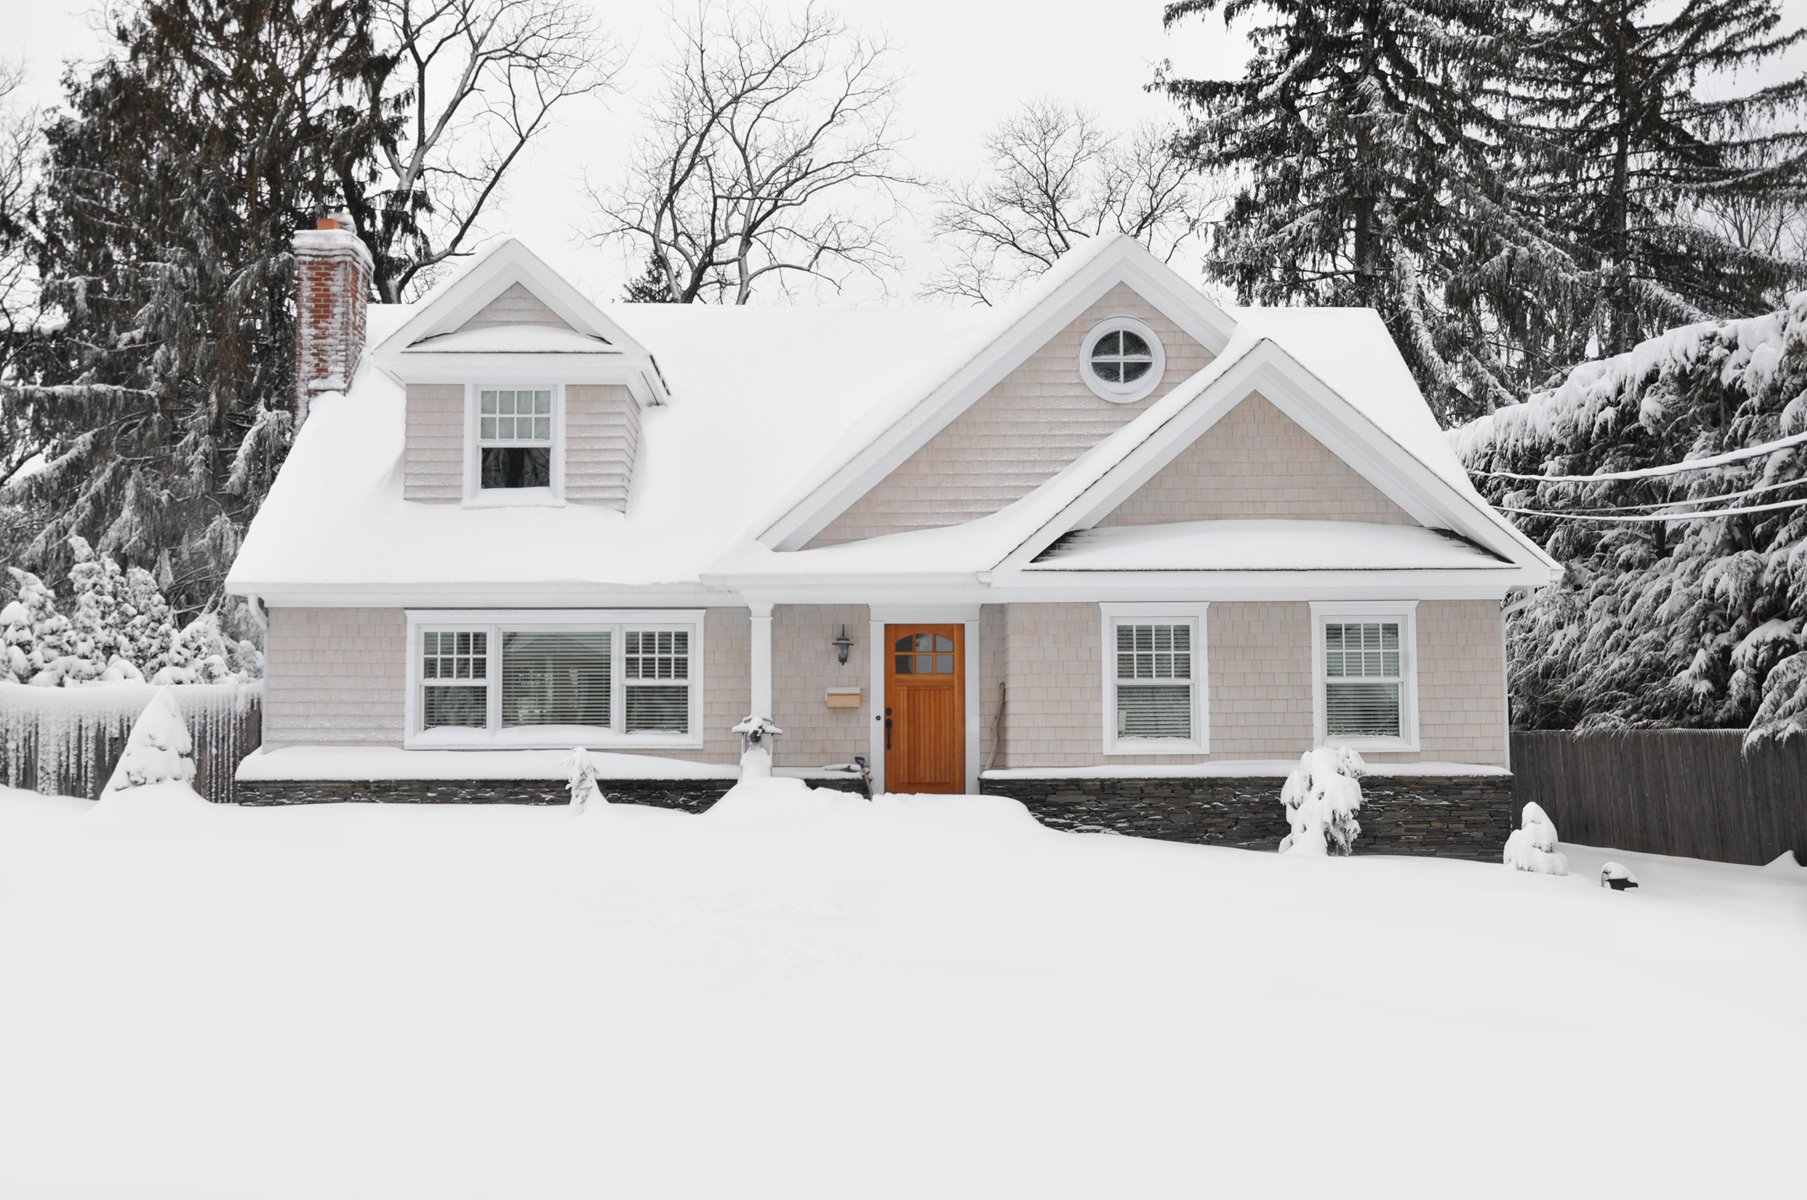 house and snow covered yard trees